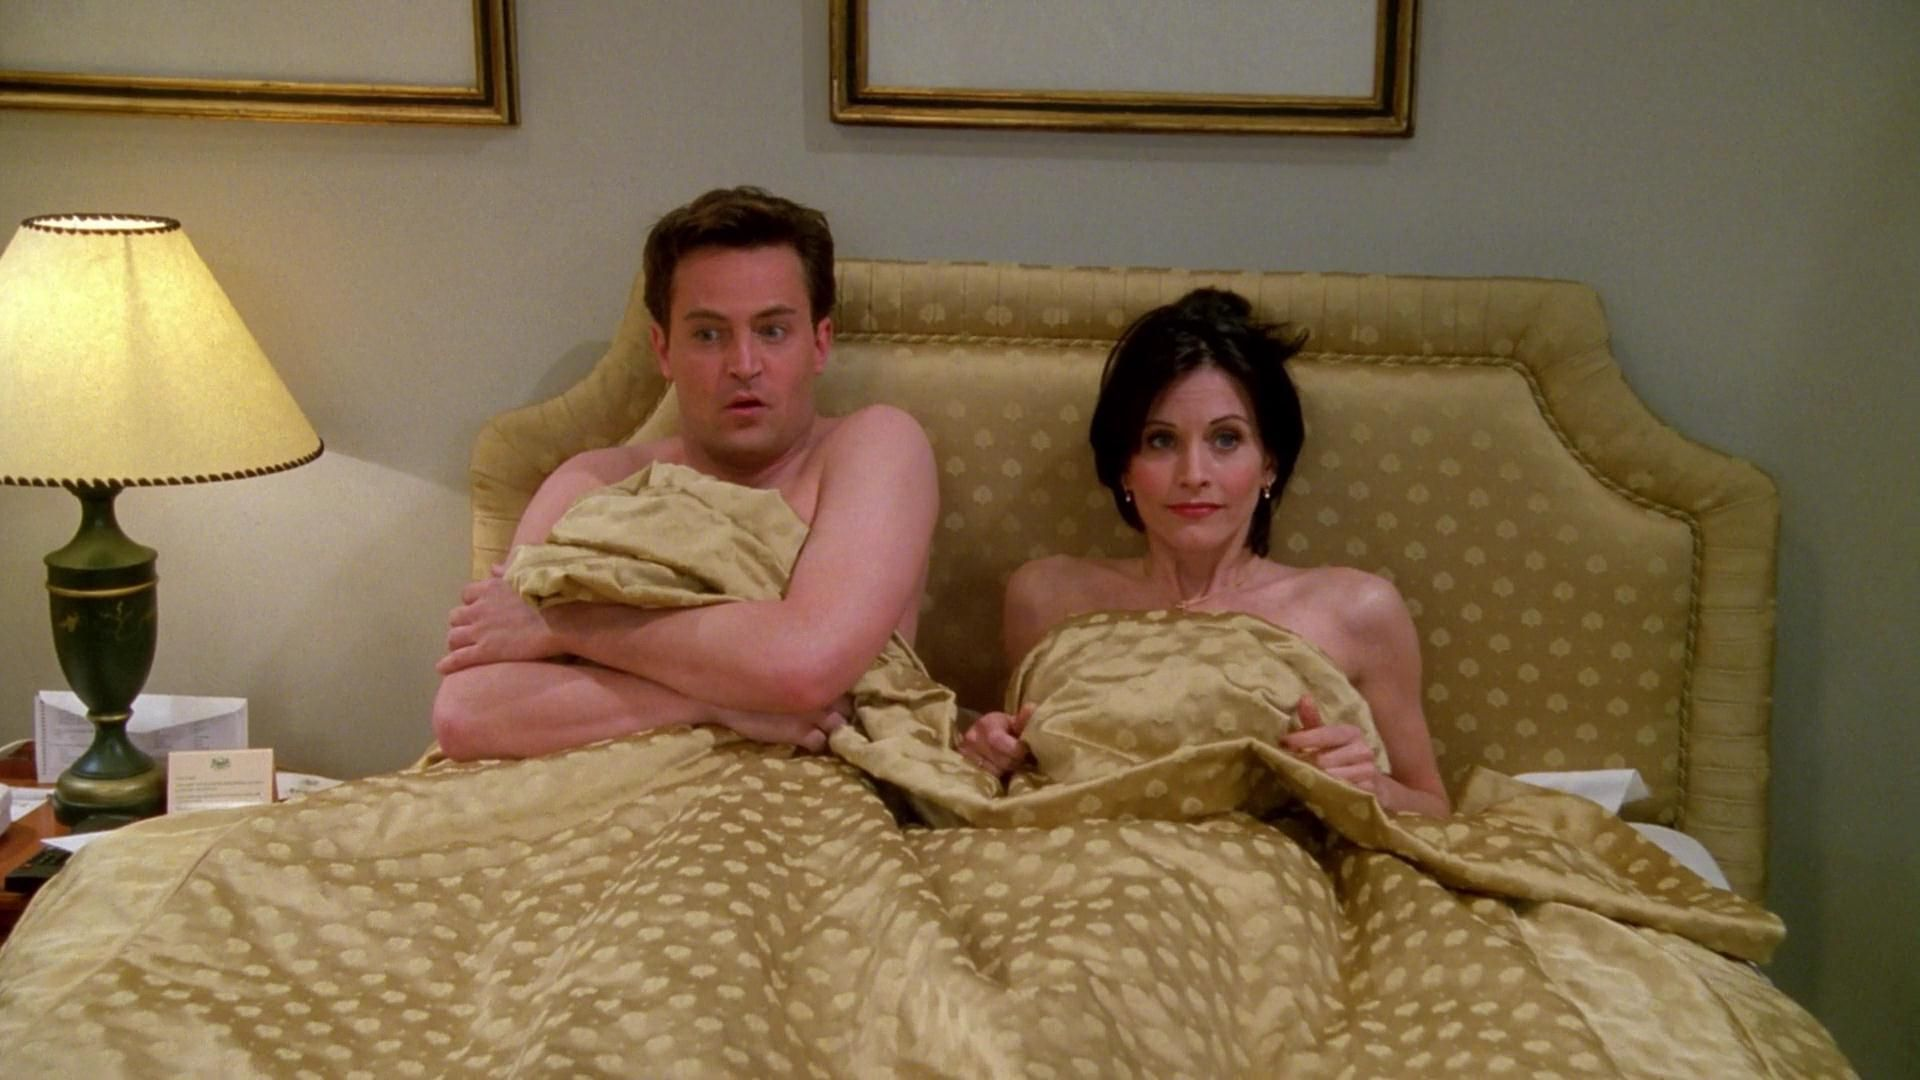 When did chandler and monica first hook up